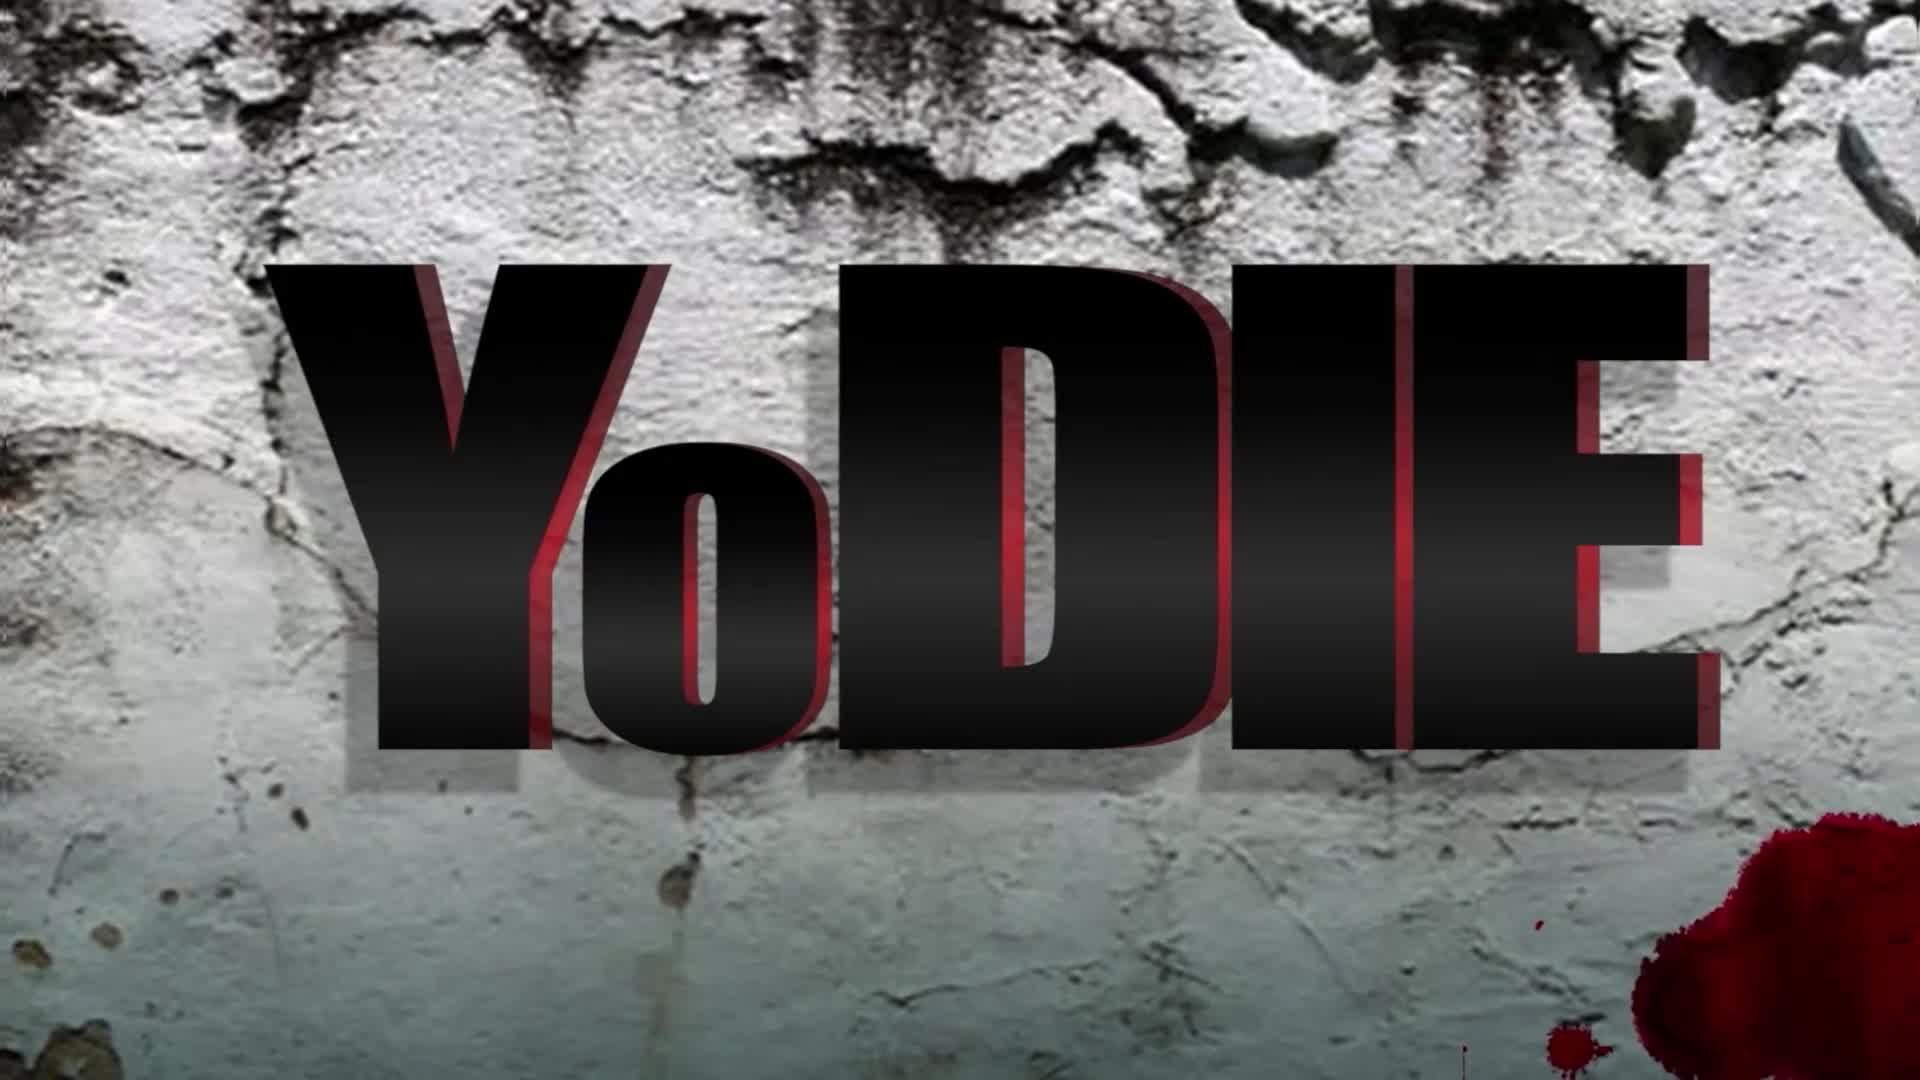 Yodie